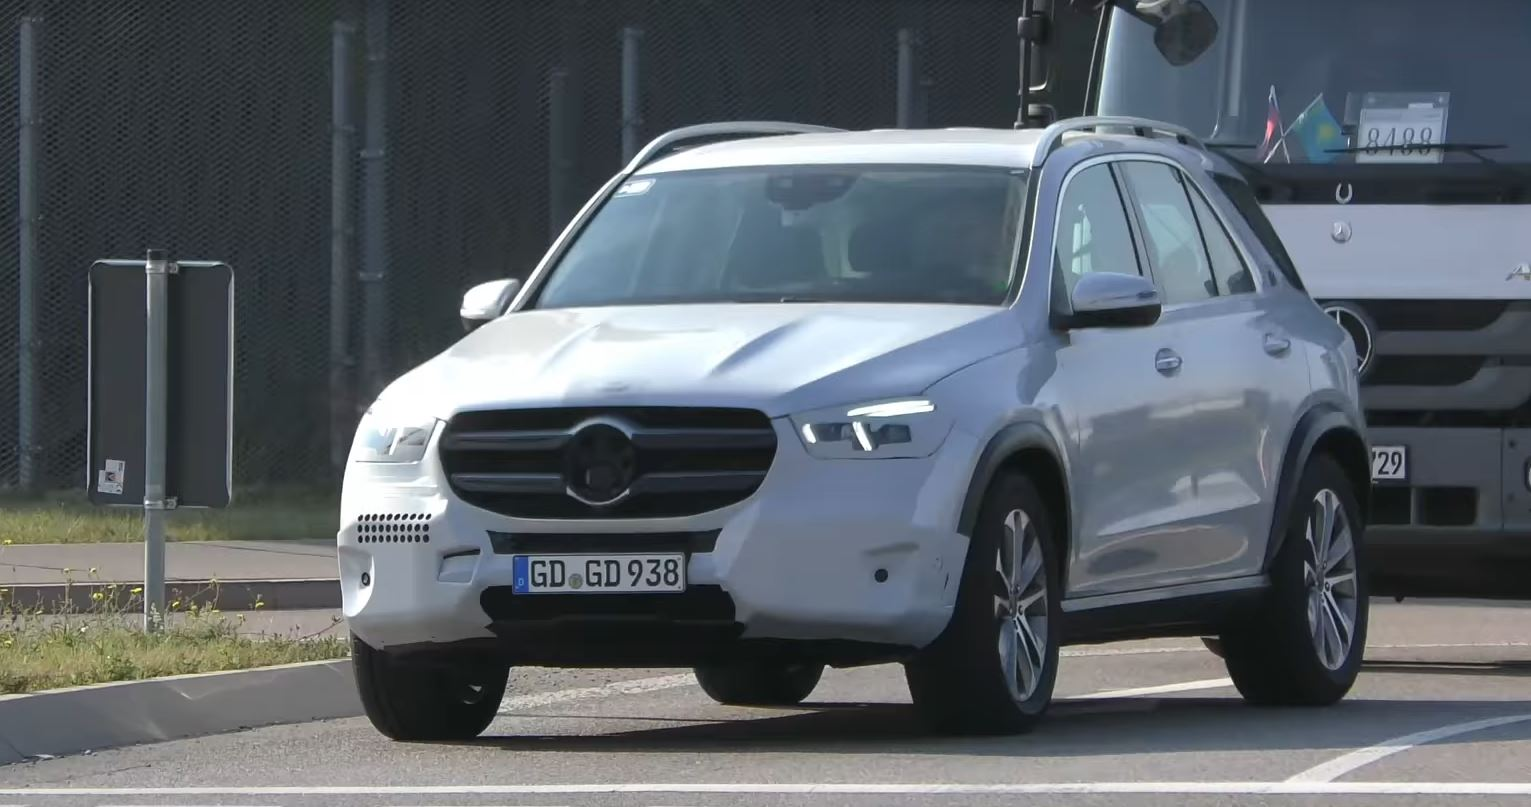 2019 Mercedes Gle Clspied Nearly Undisguised Is Making 4 Cylinder Sounds